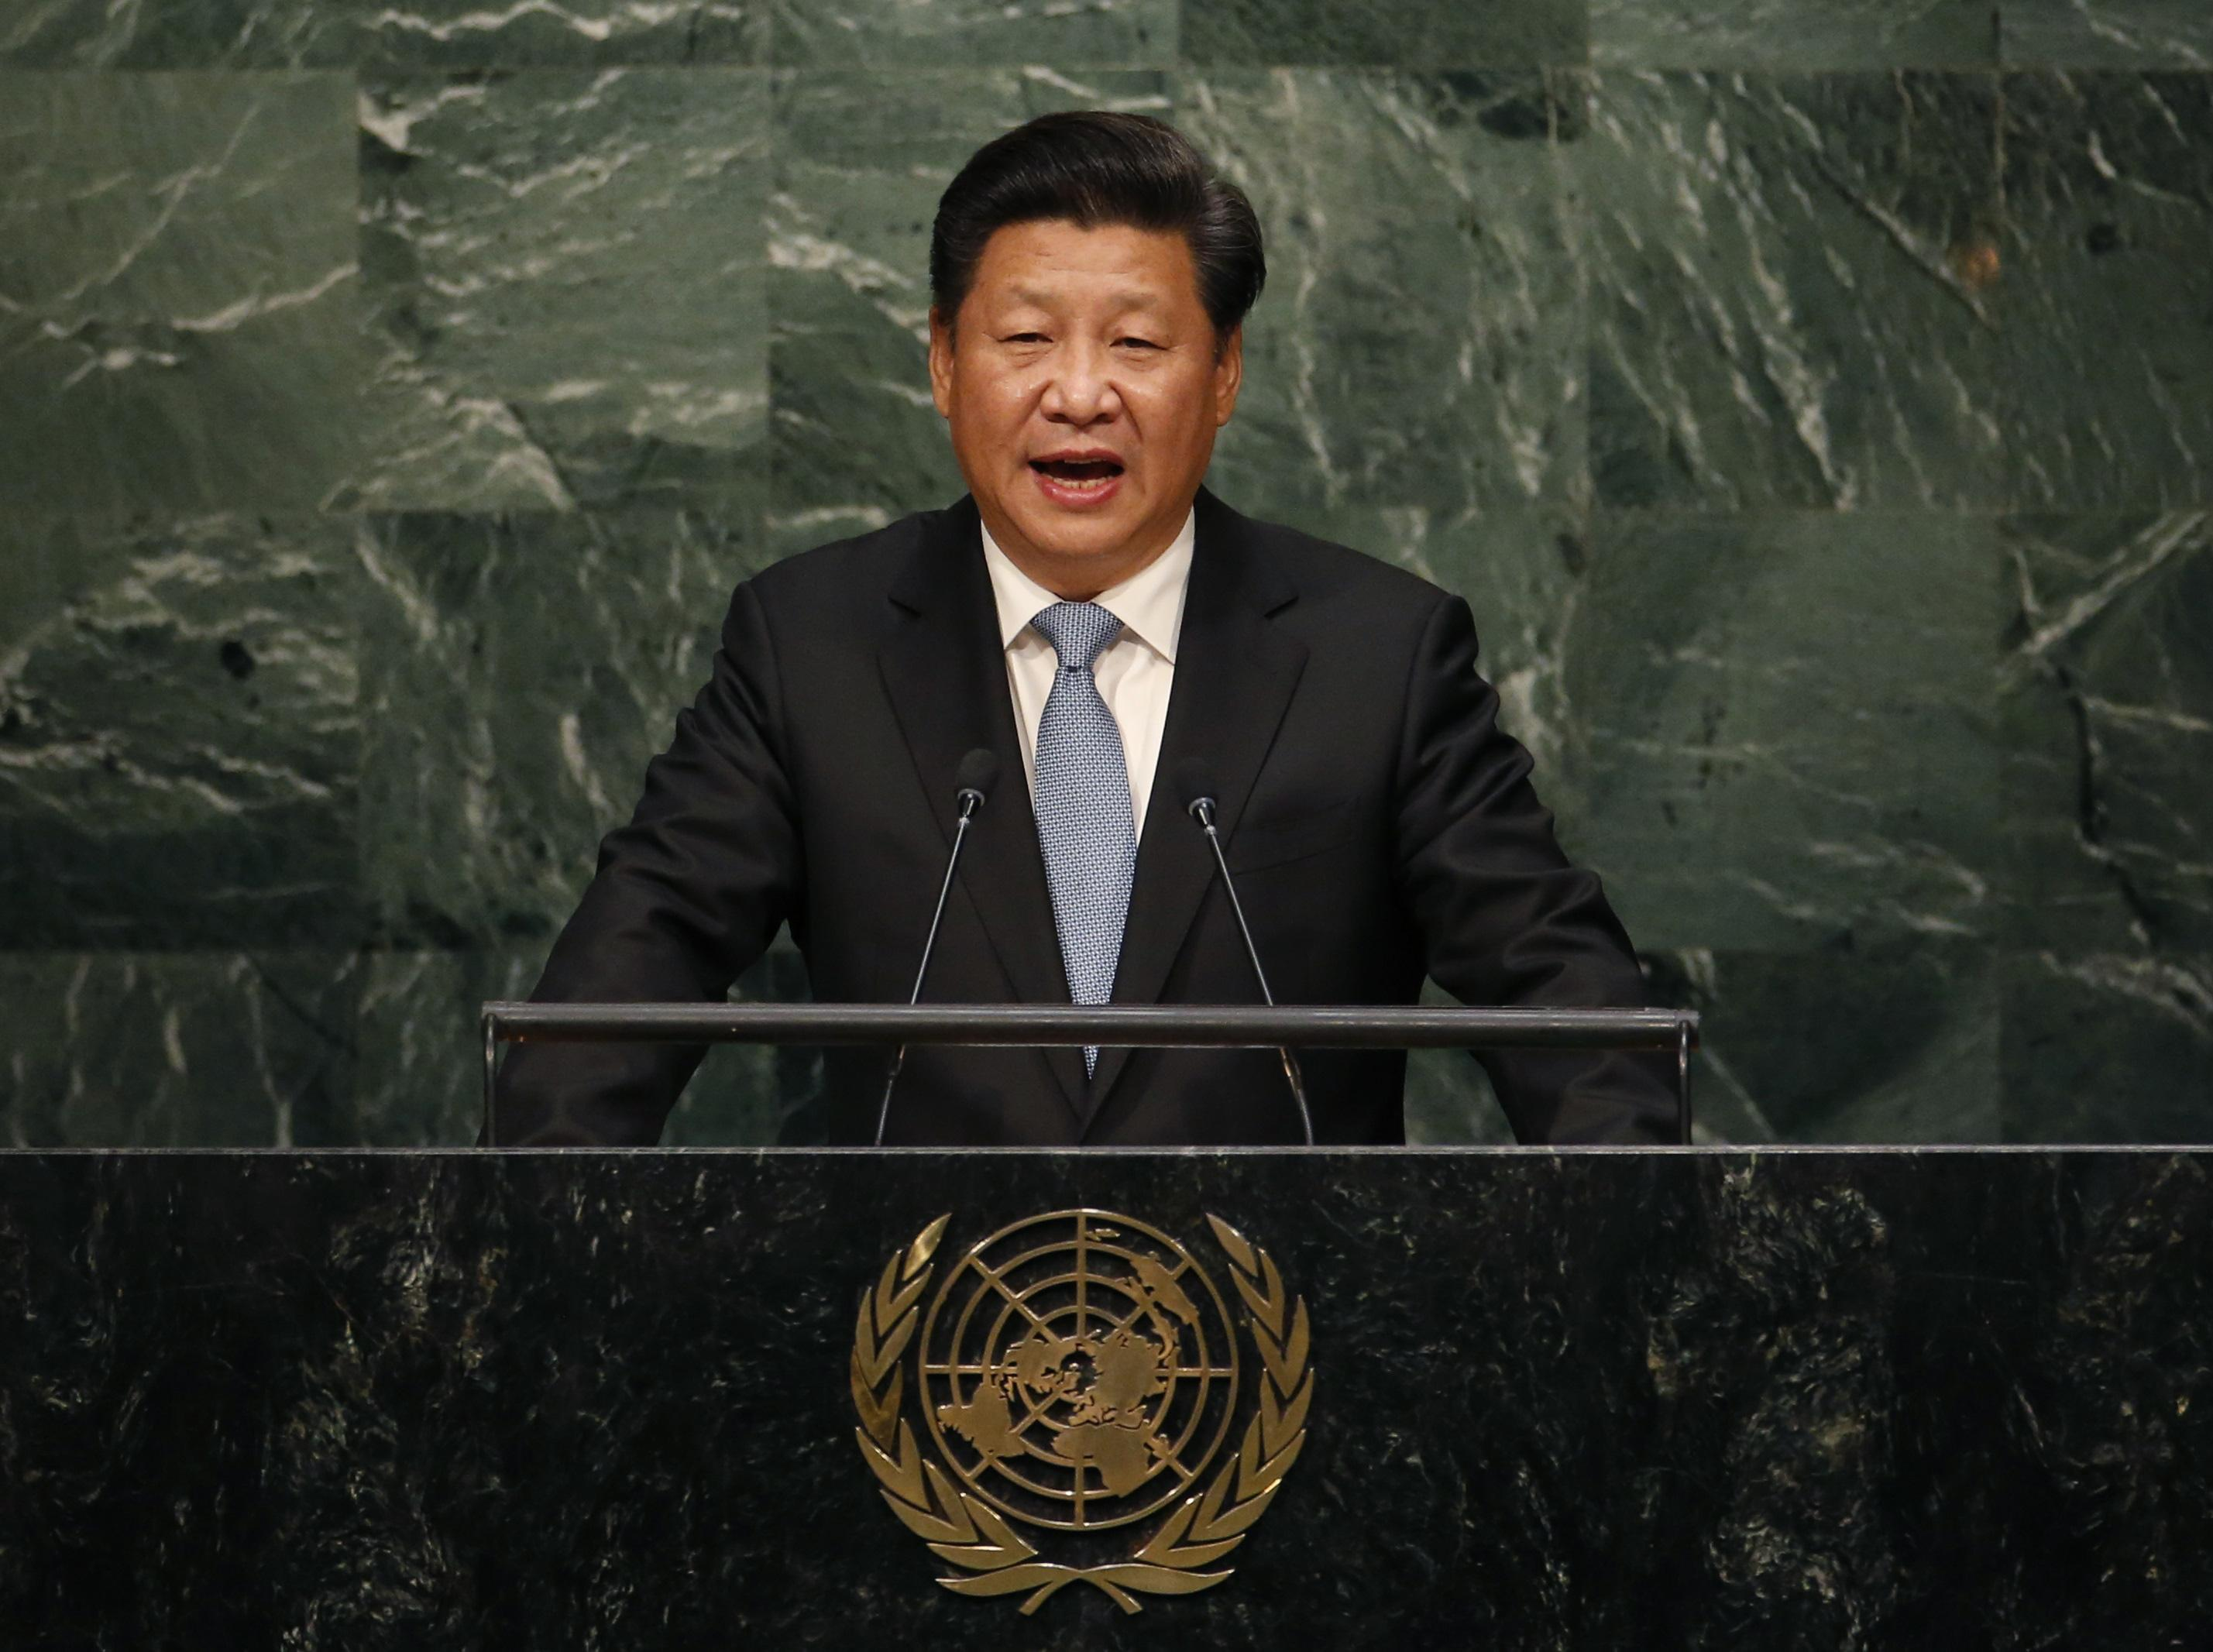 Chinese President Xi Jinping Addressing the United Nations.